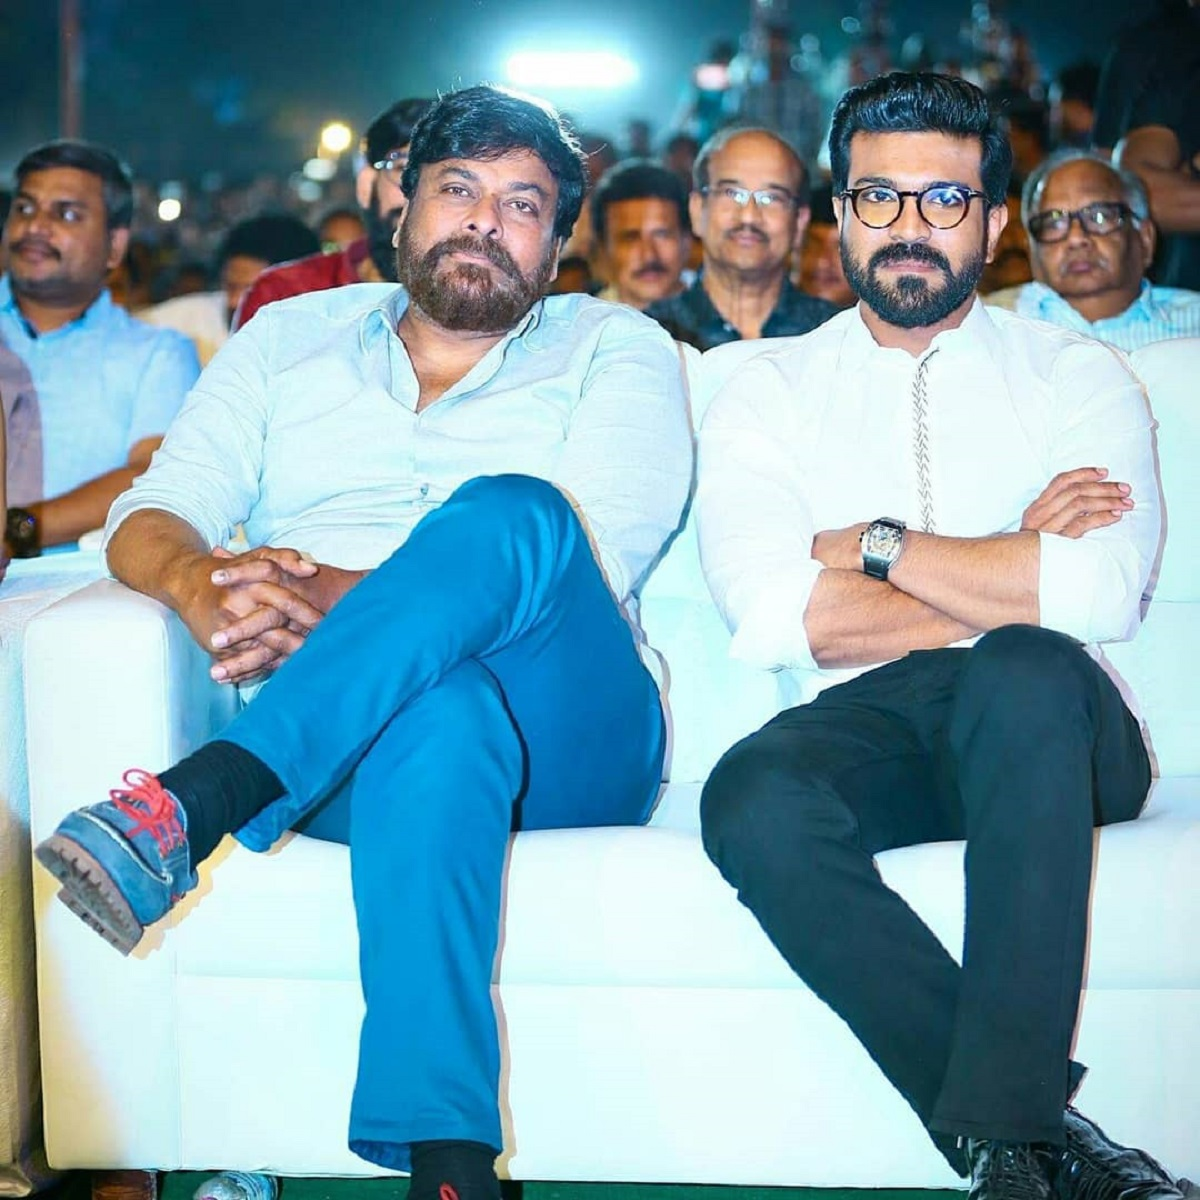 Chiranjeevi confirms that Ram Charan is in cast of 'Acharya'